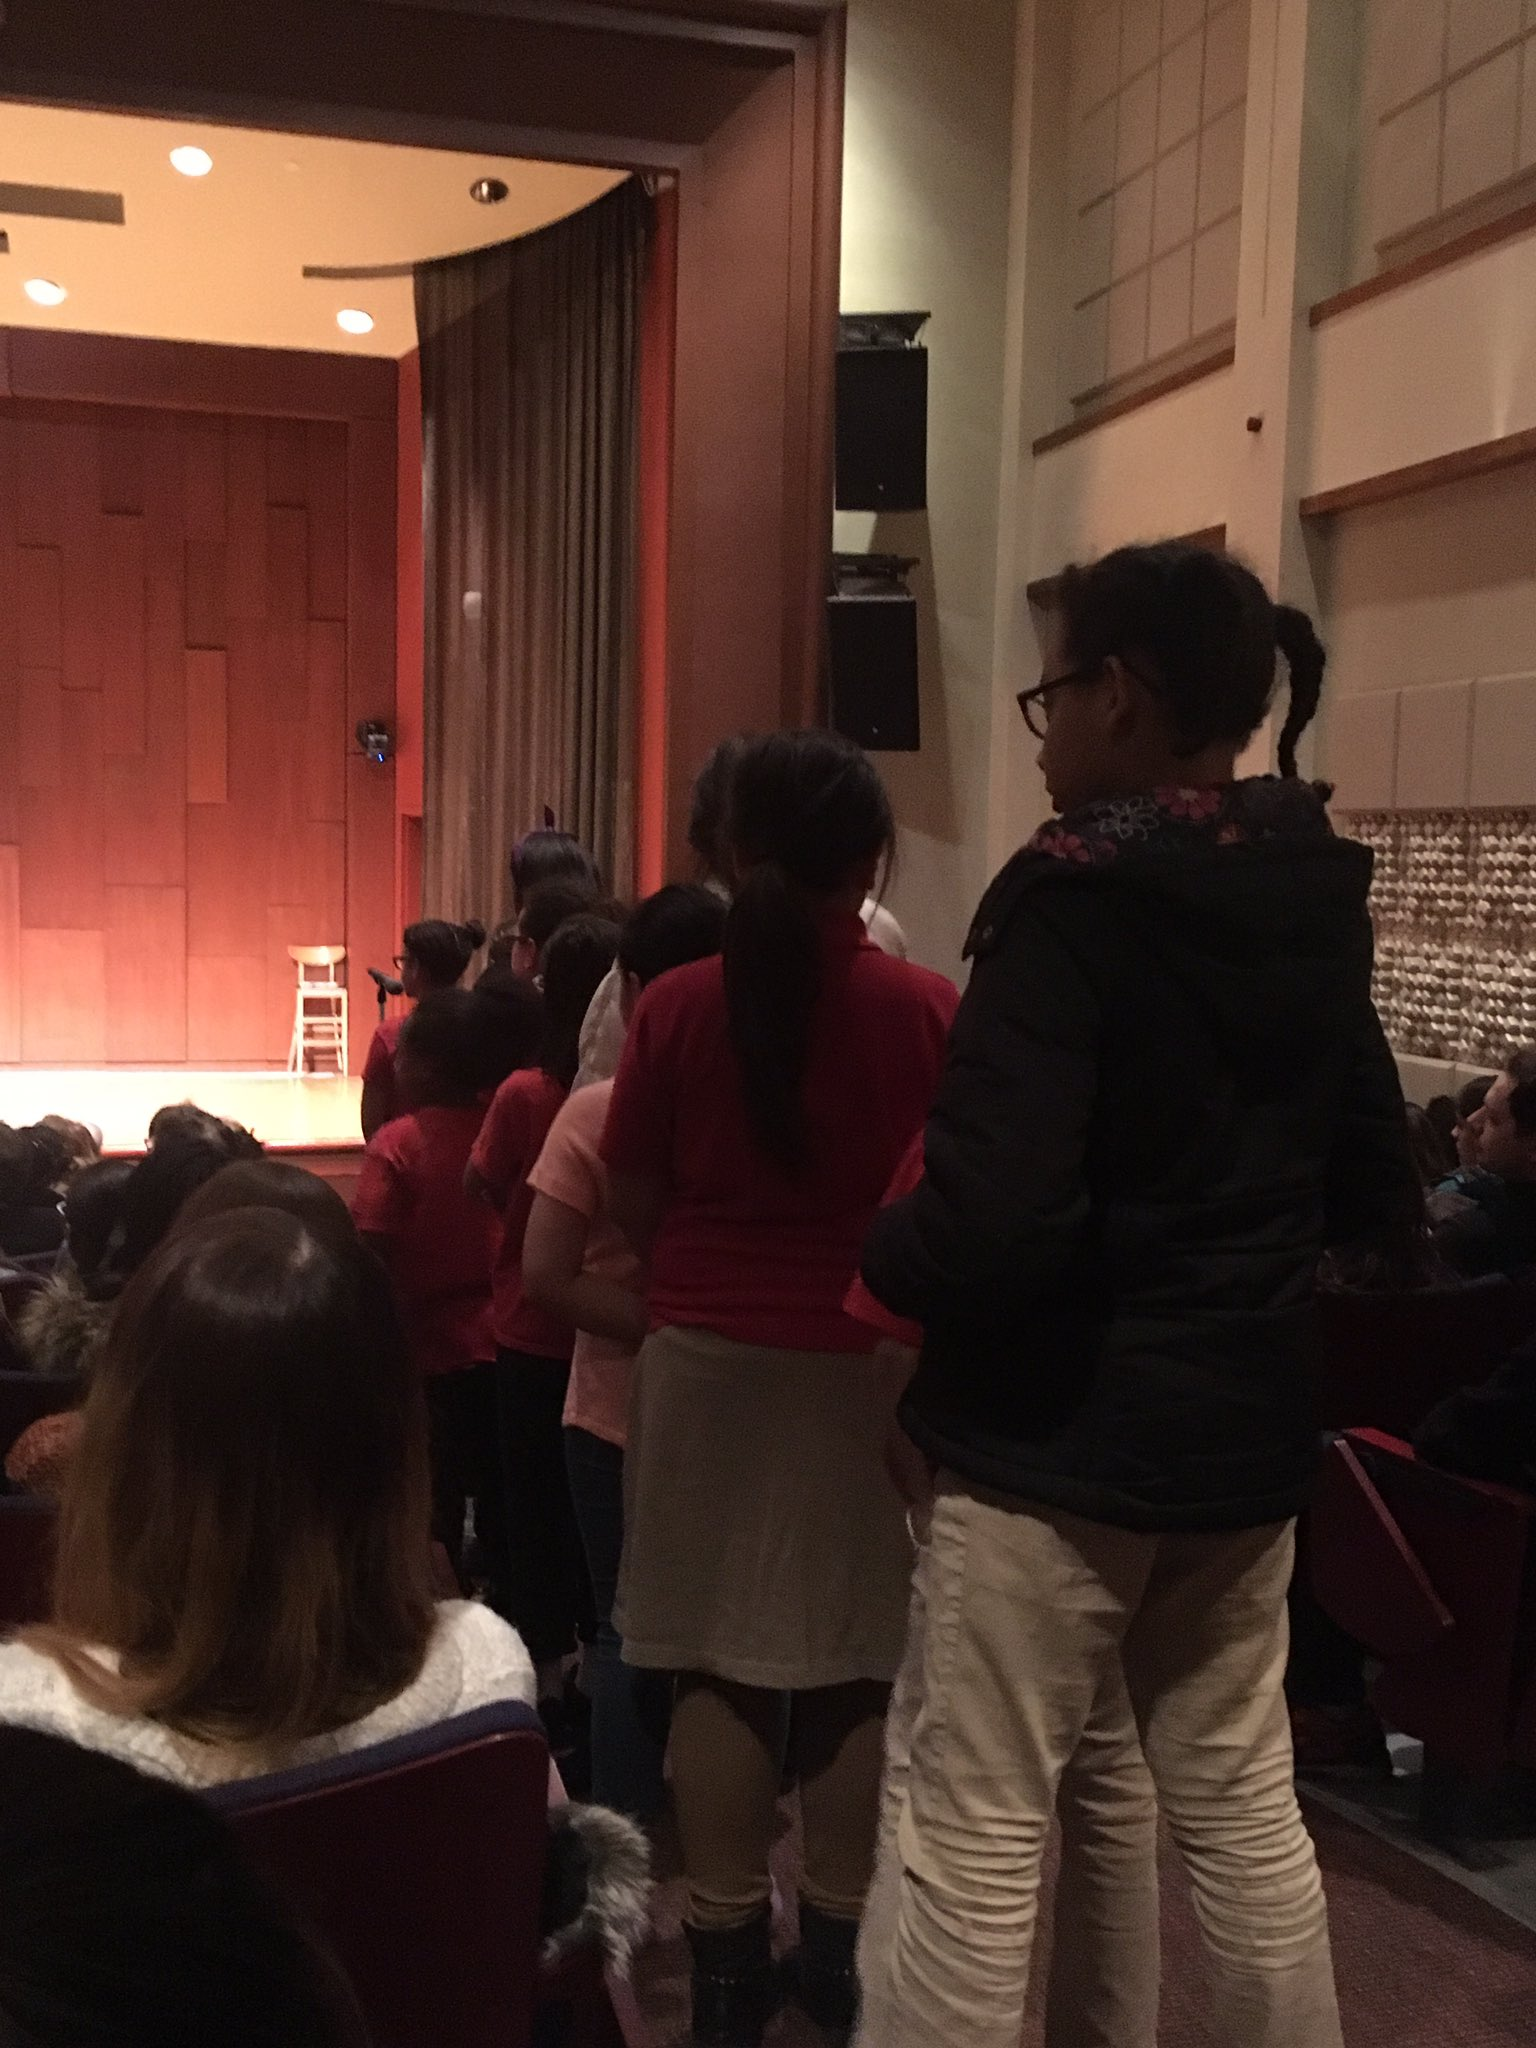 The Q&A line for #MargotLeeShetterlyAtBrown is all little girls of color asking questions. .@margotshetterly is beaming and answering kindly https://t.co/3g93UKnYFr